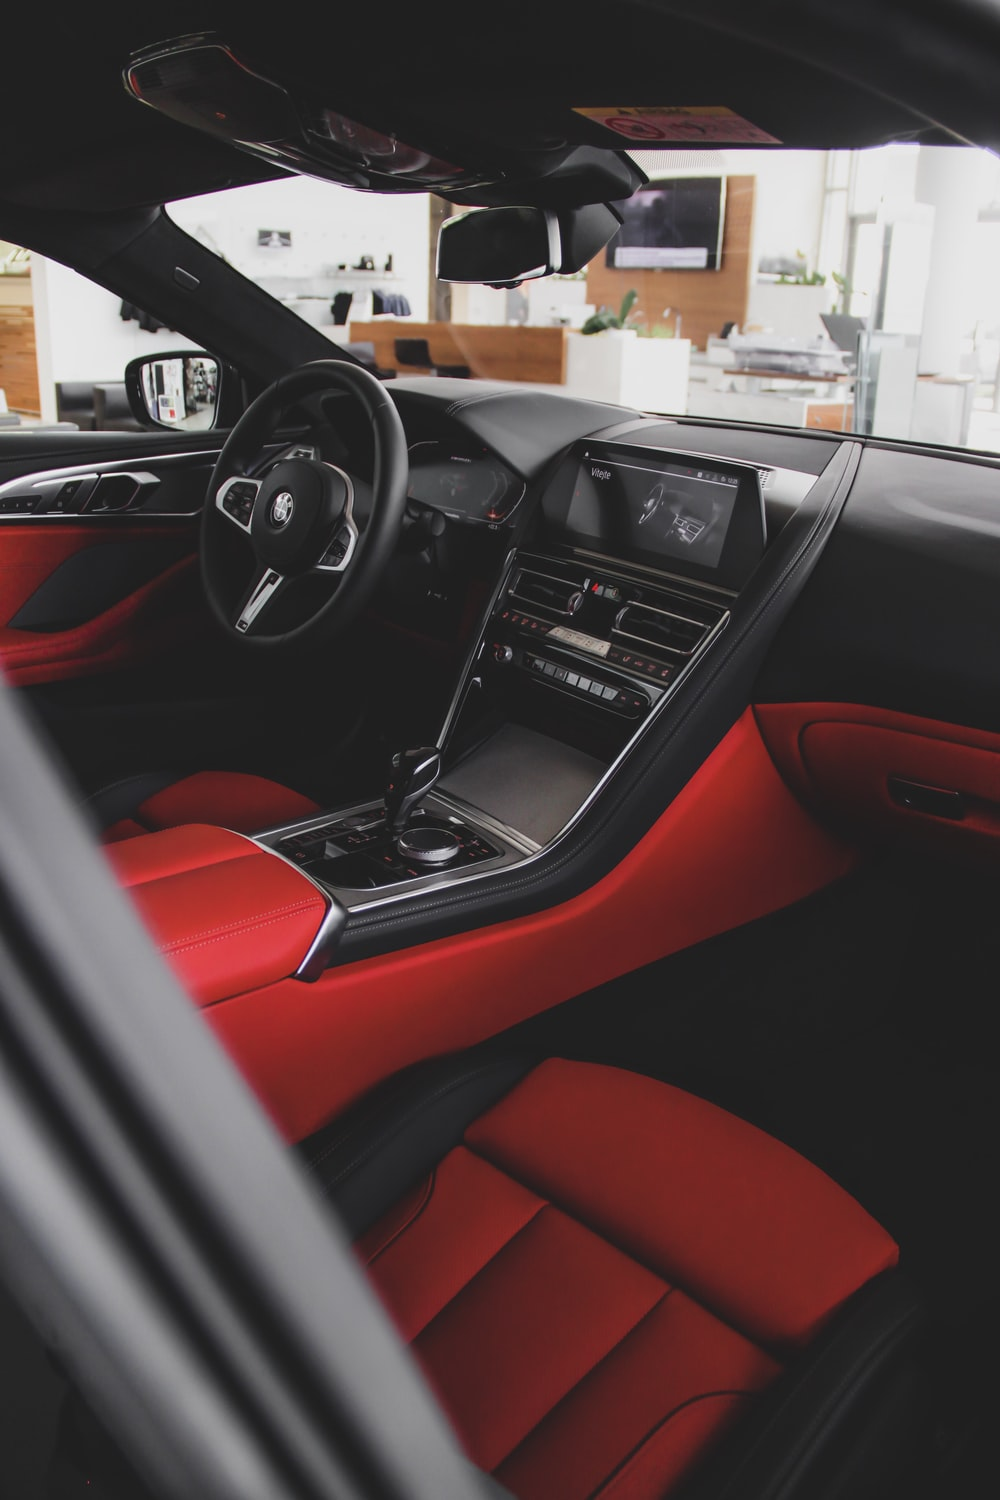 black and red car interior during daytime